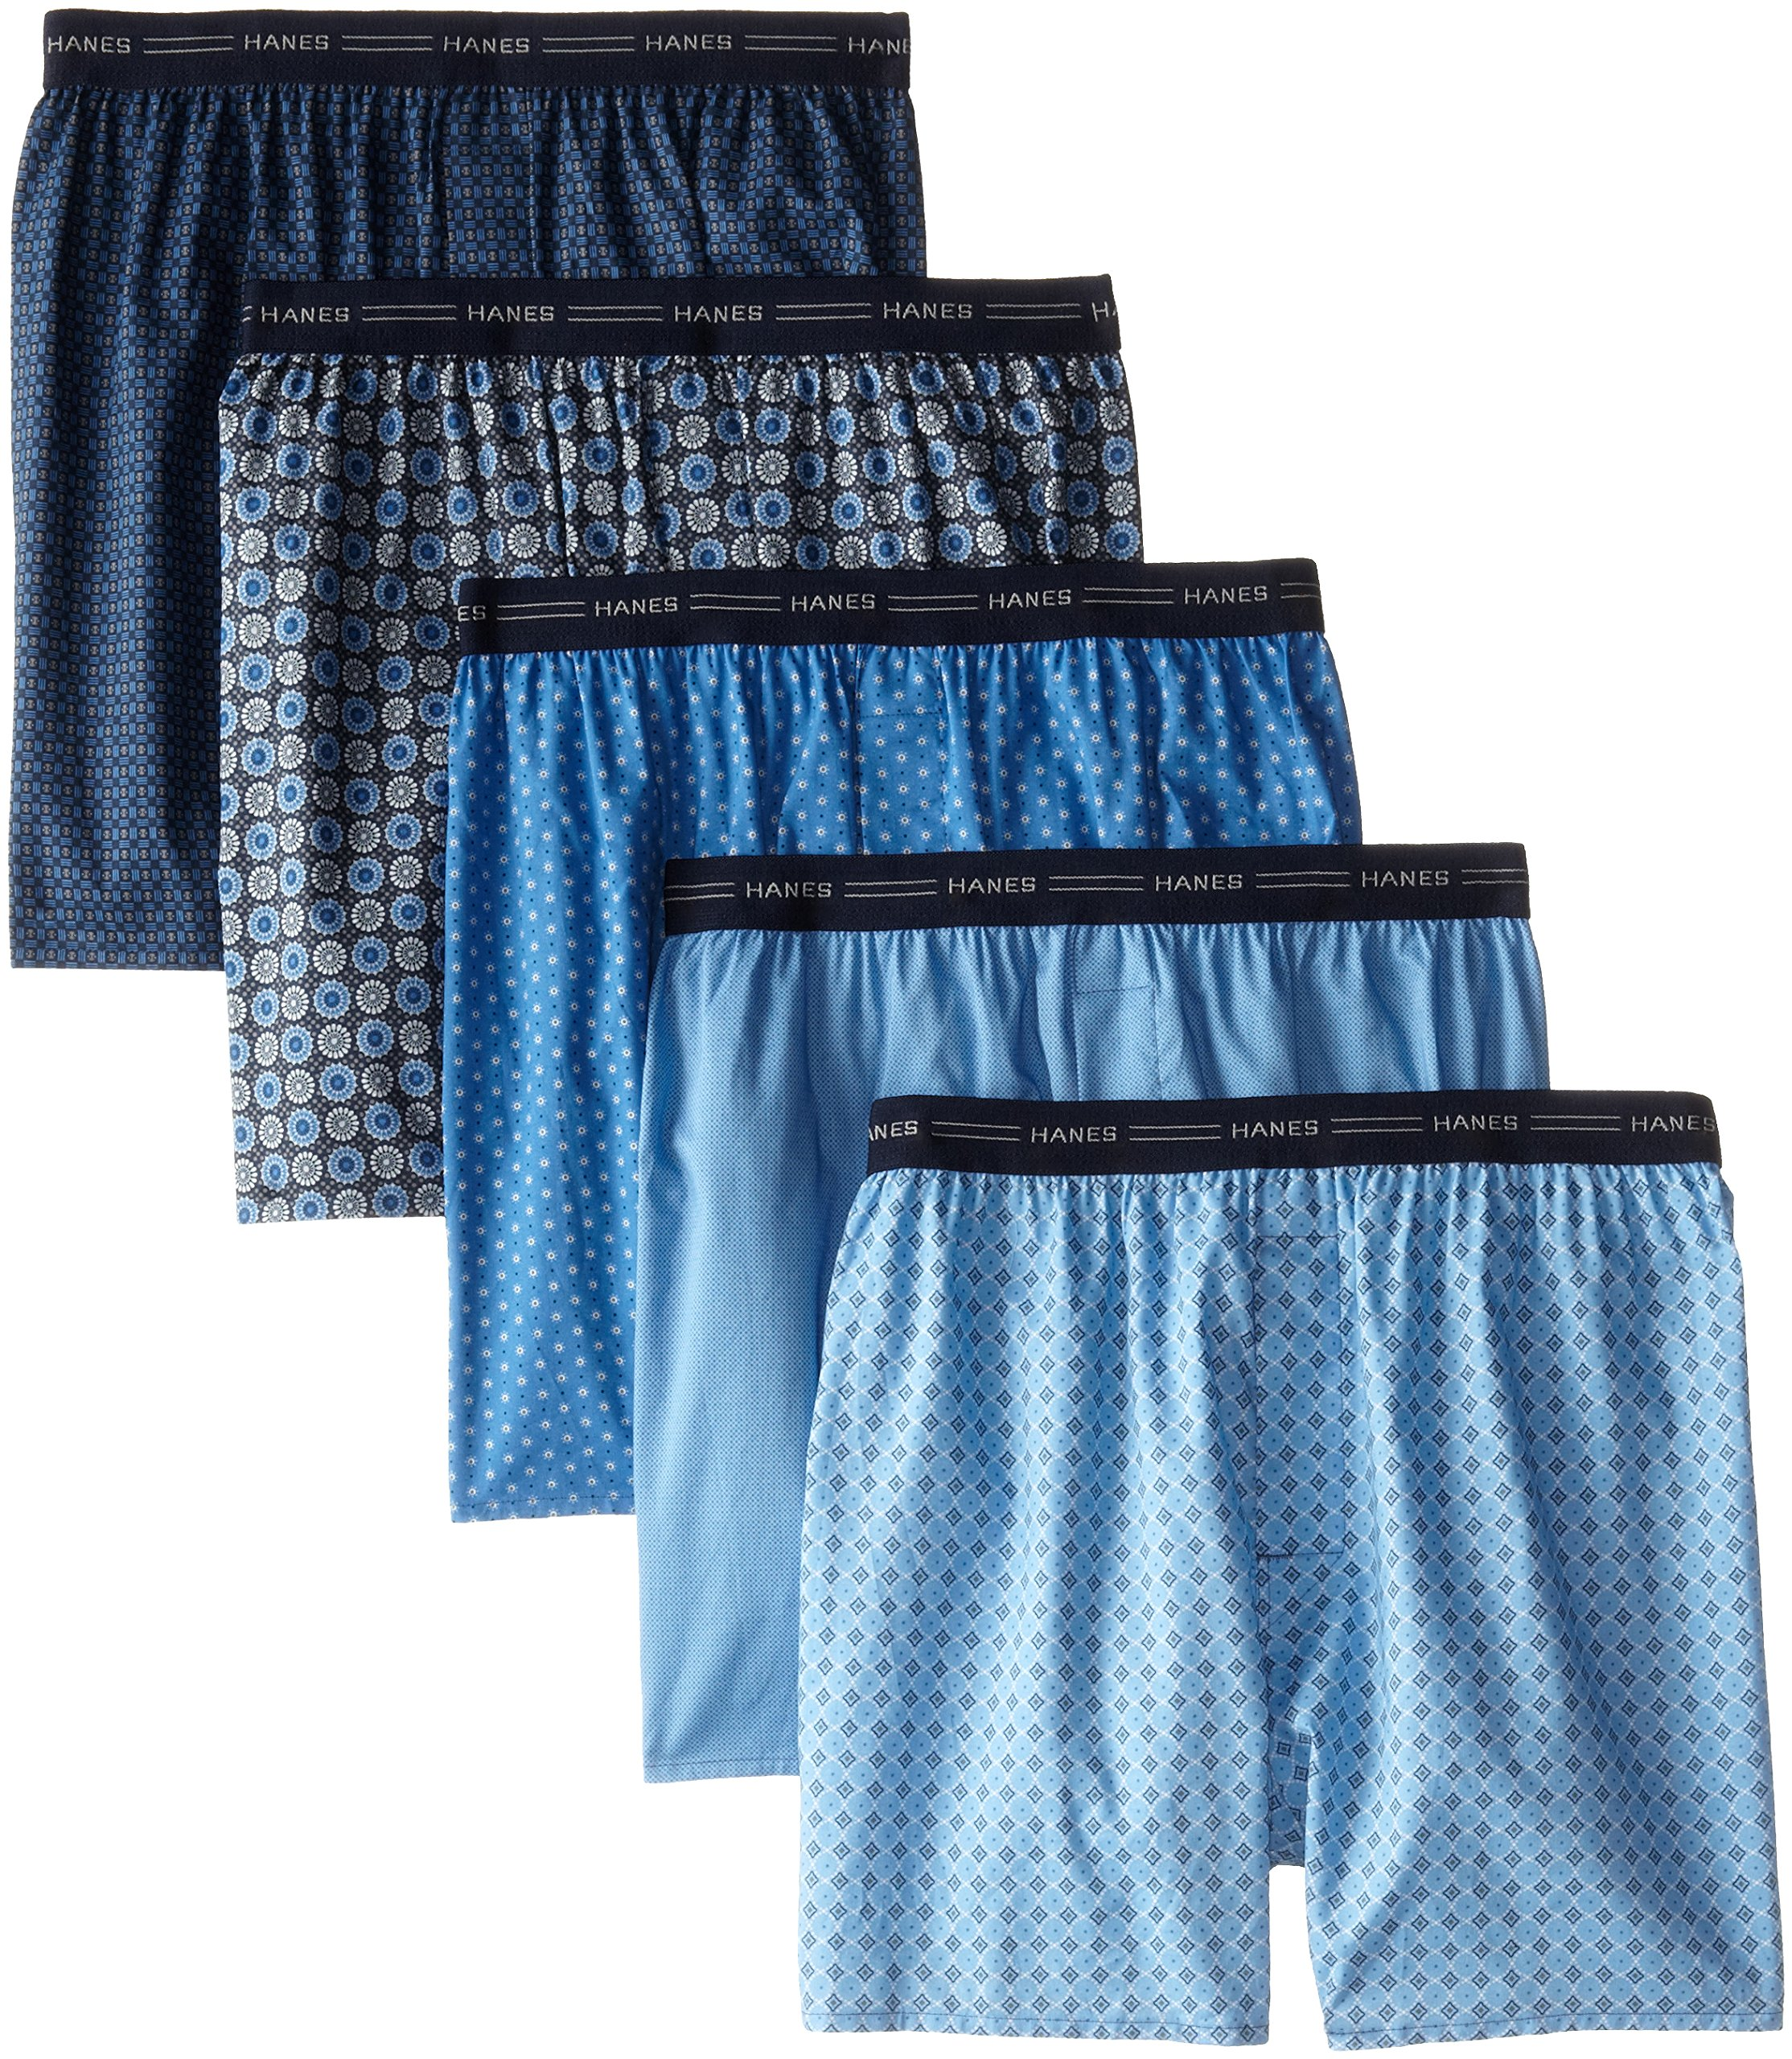 Hanes Men's 5-Pack Printed Woven Exposed Waistband Boxers, Print, Medium by Hanes